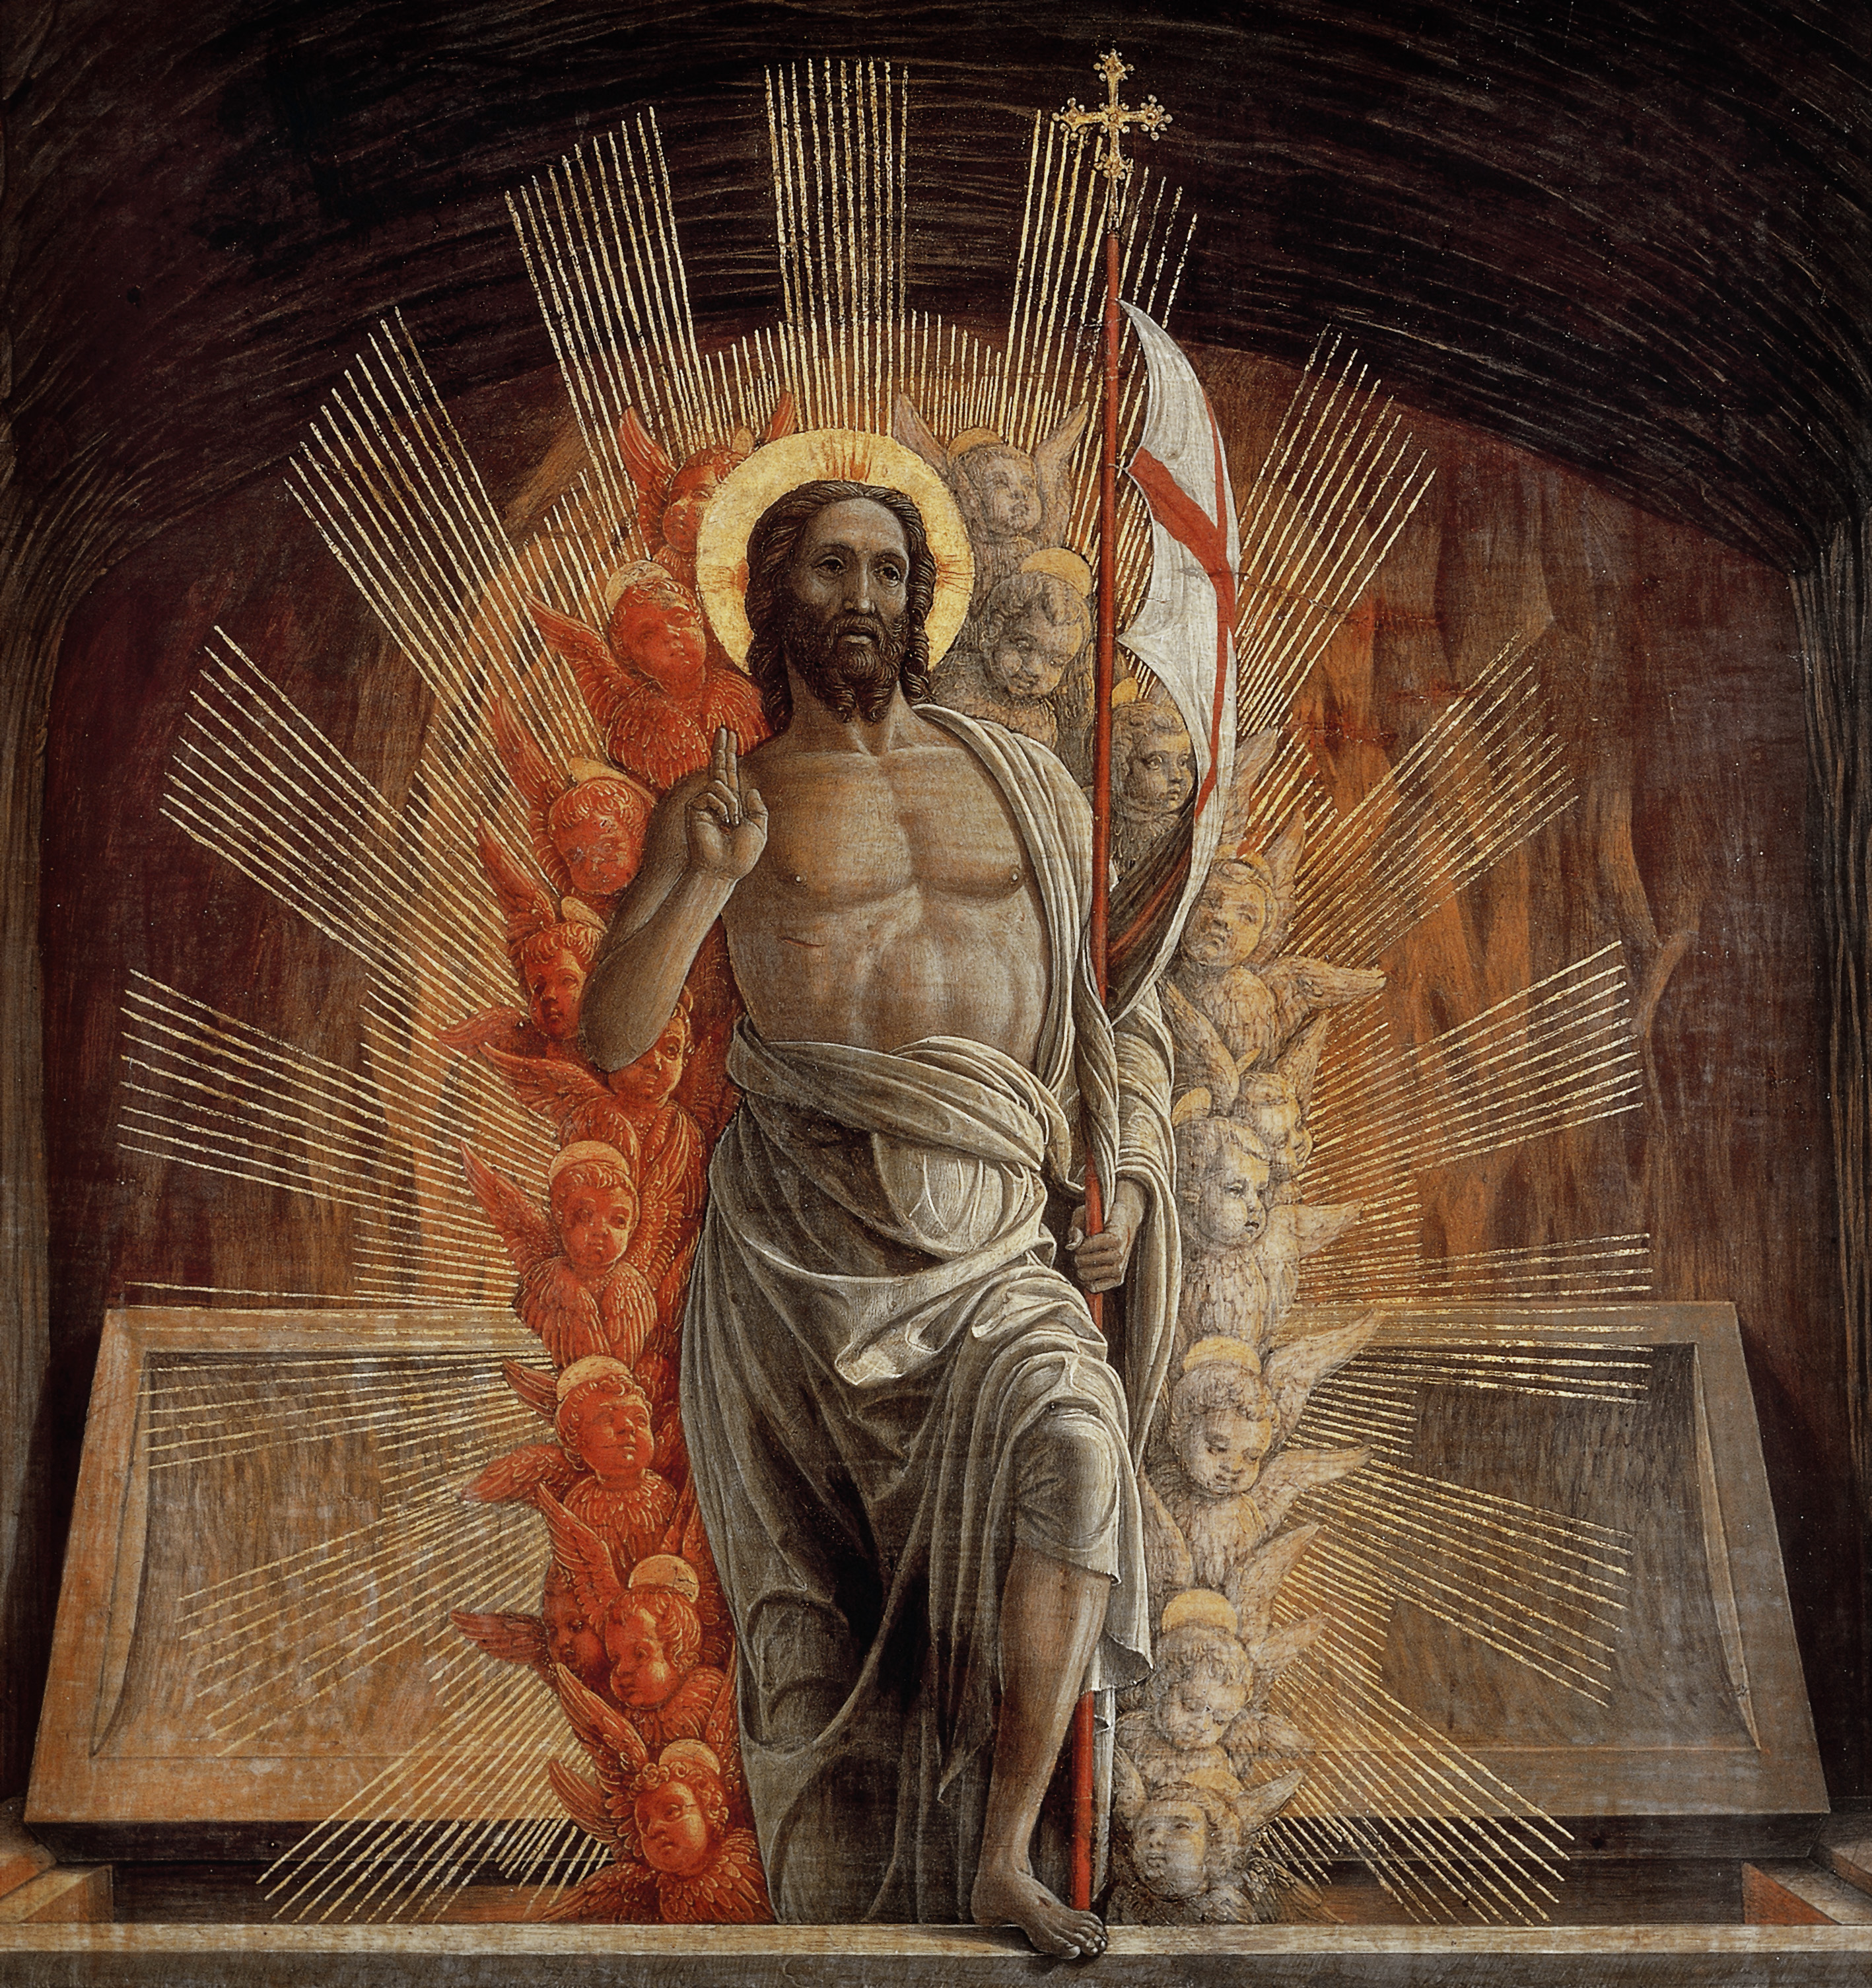 Jesus rises on Easter, and we rise, too. | America Magazine